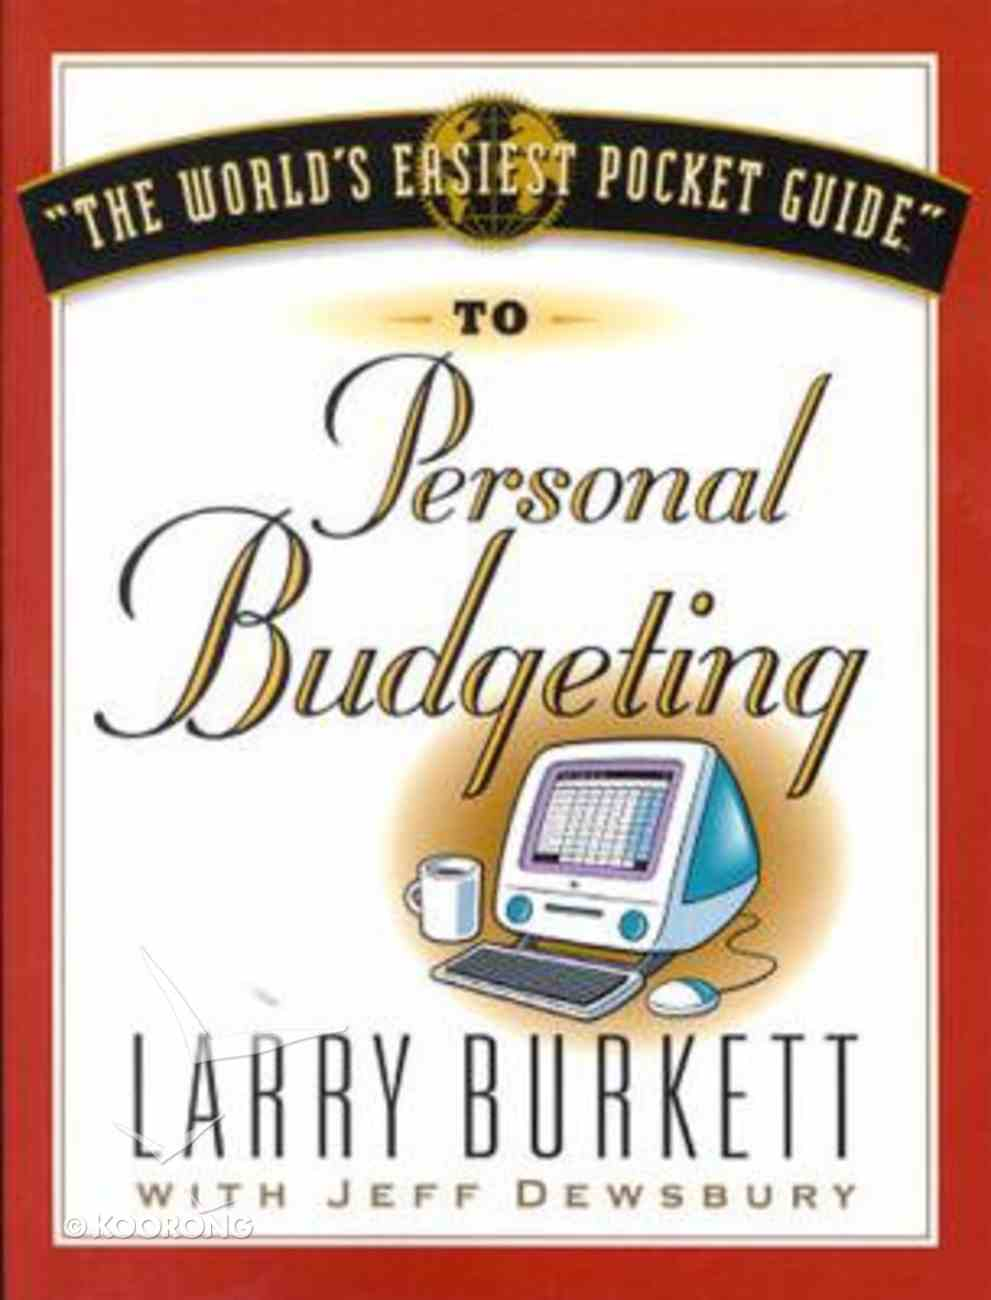 The World's Easiest Pocket Guide to Personal Budgeting Paperback